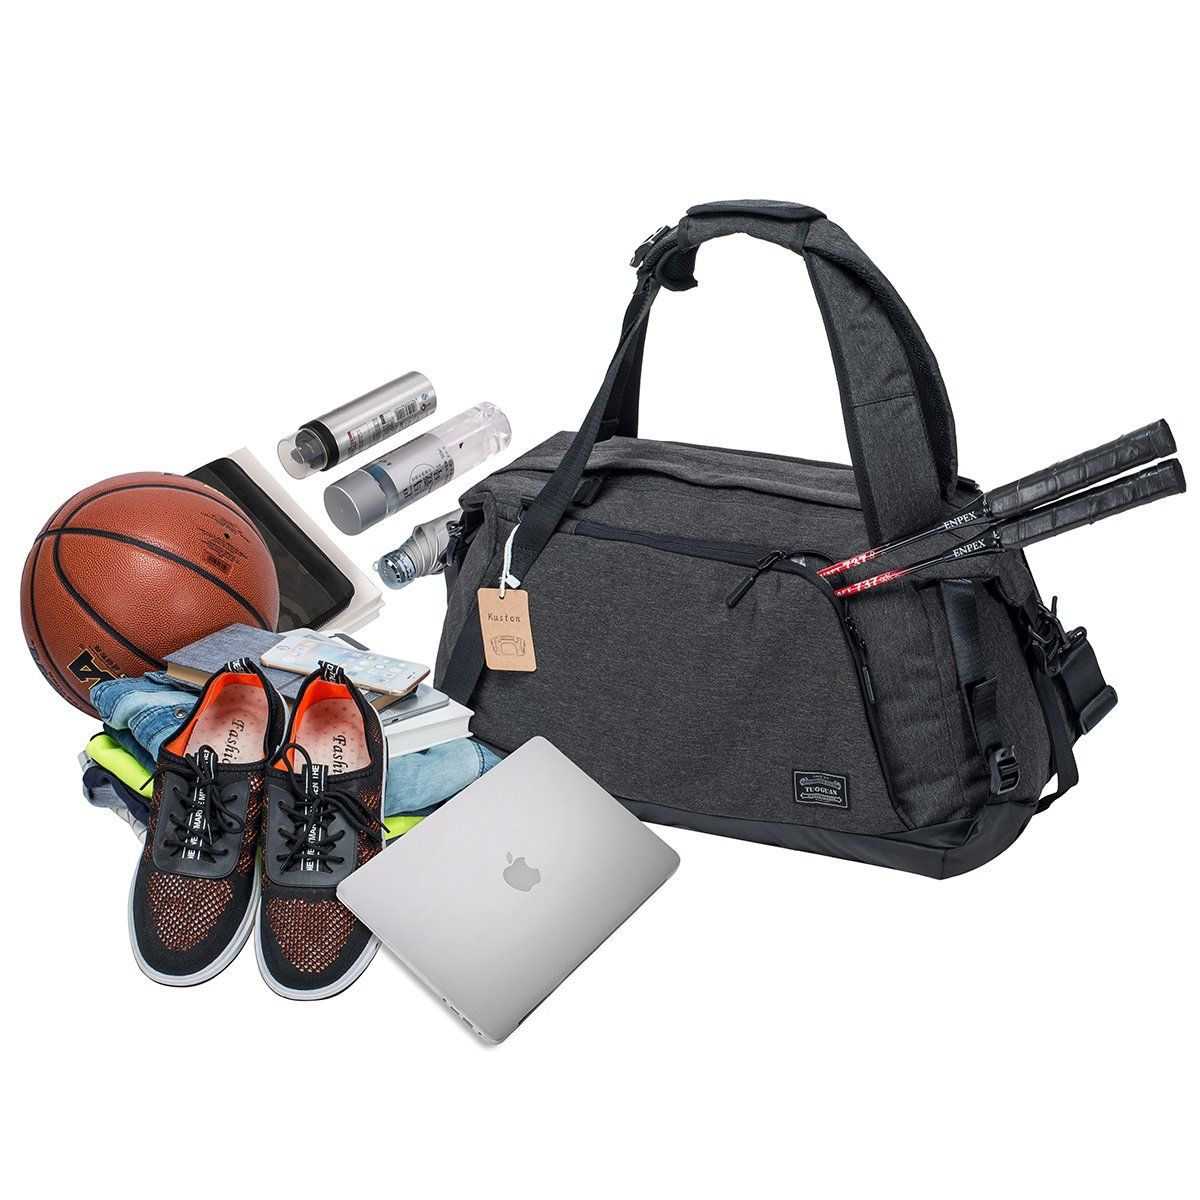 Sports Gym Bag with Shoes Compartment Travel Duffel Bag